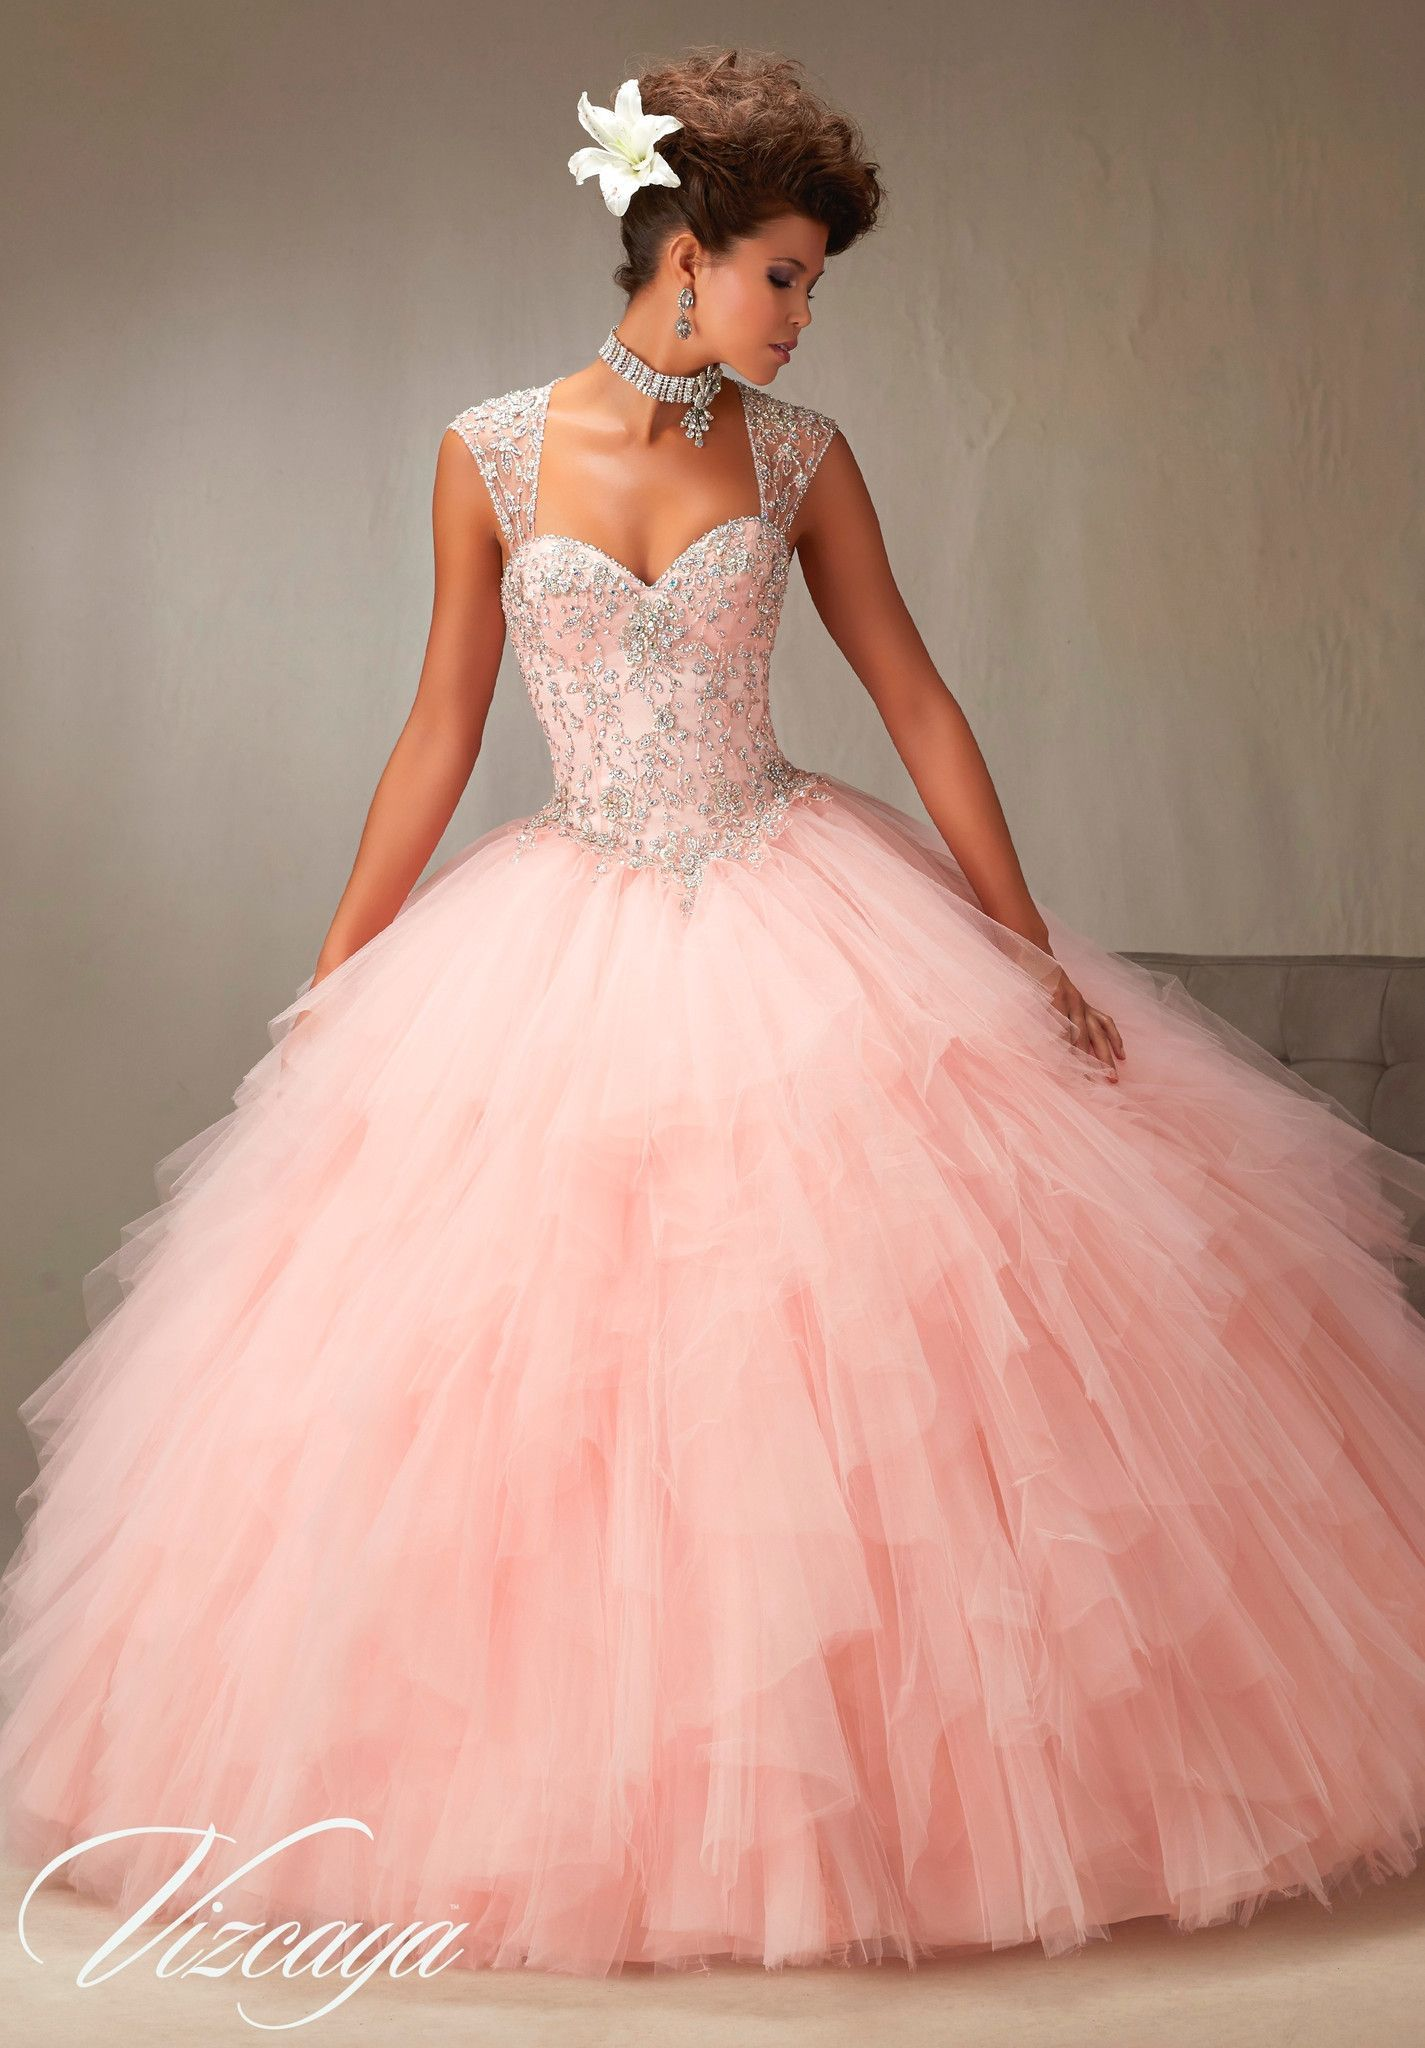 Mori Lee Quinceanera Dress 89066 | Vestiditos, Quinceañera y 15 años